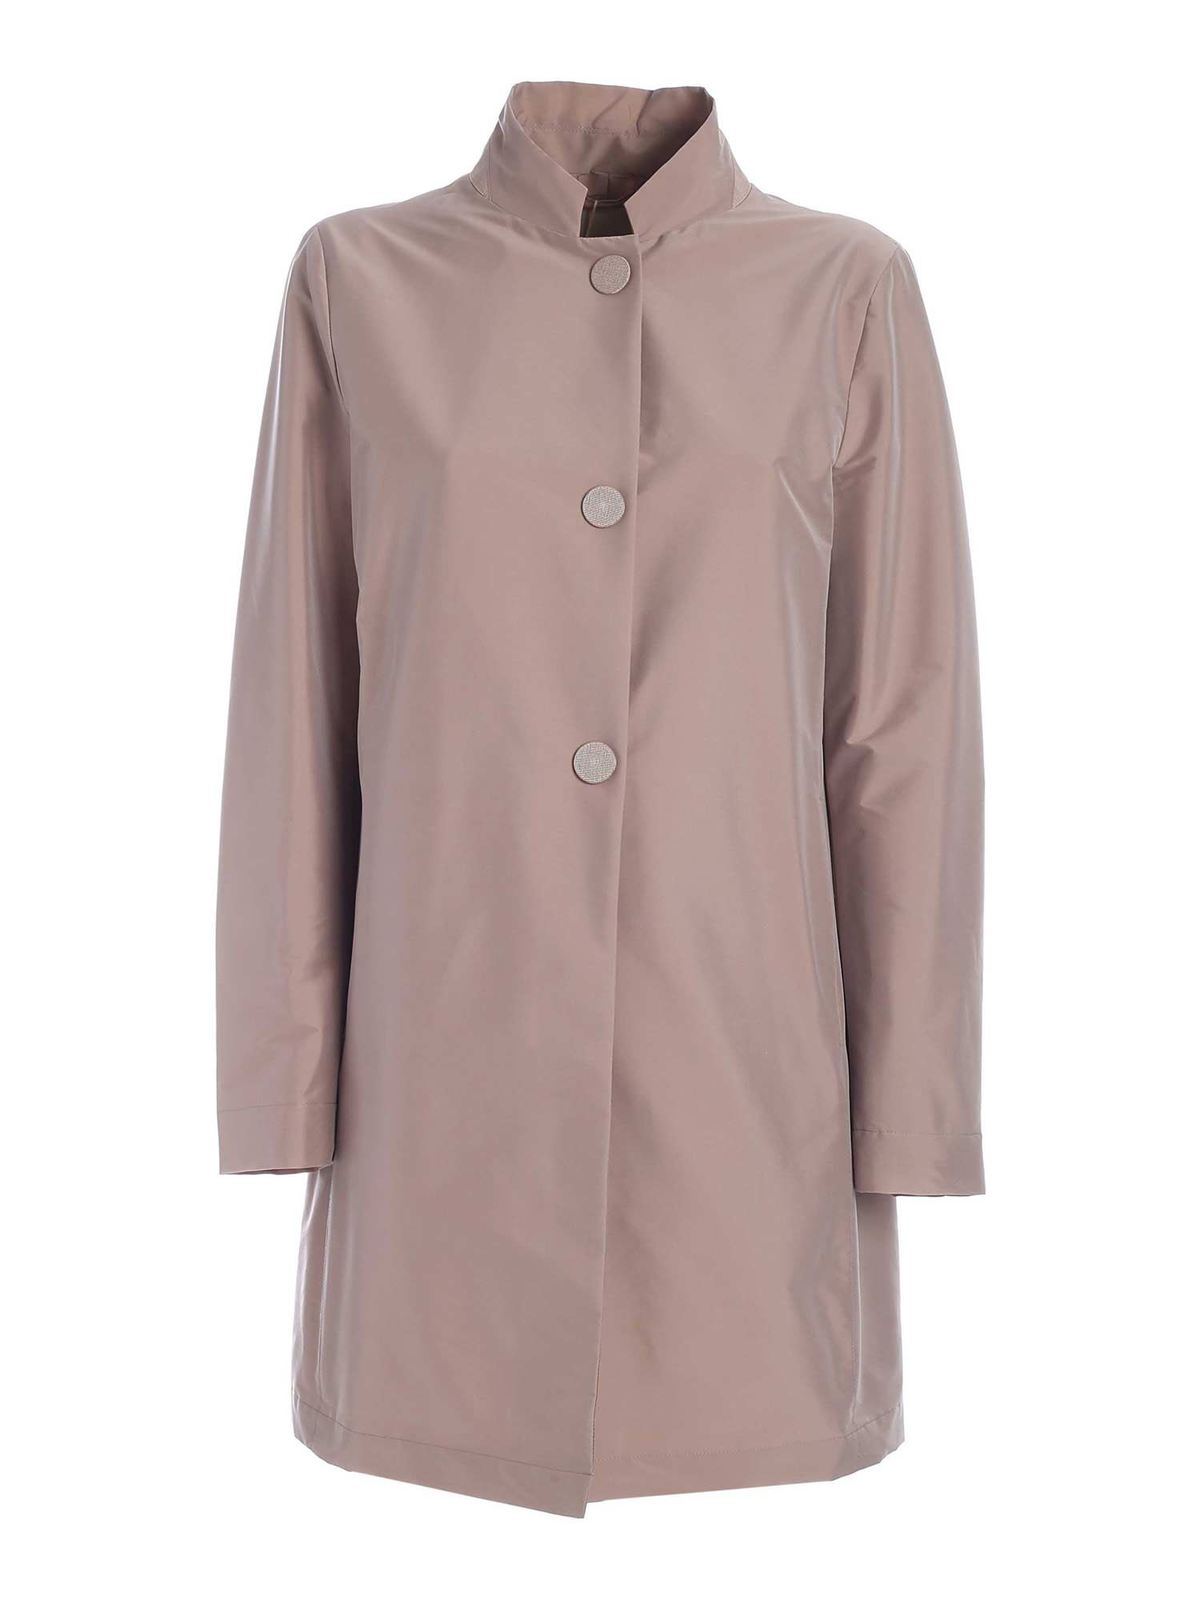 Herno SINGLE-BREASTED COAT IN ANTIQUE PINK